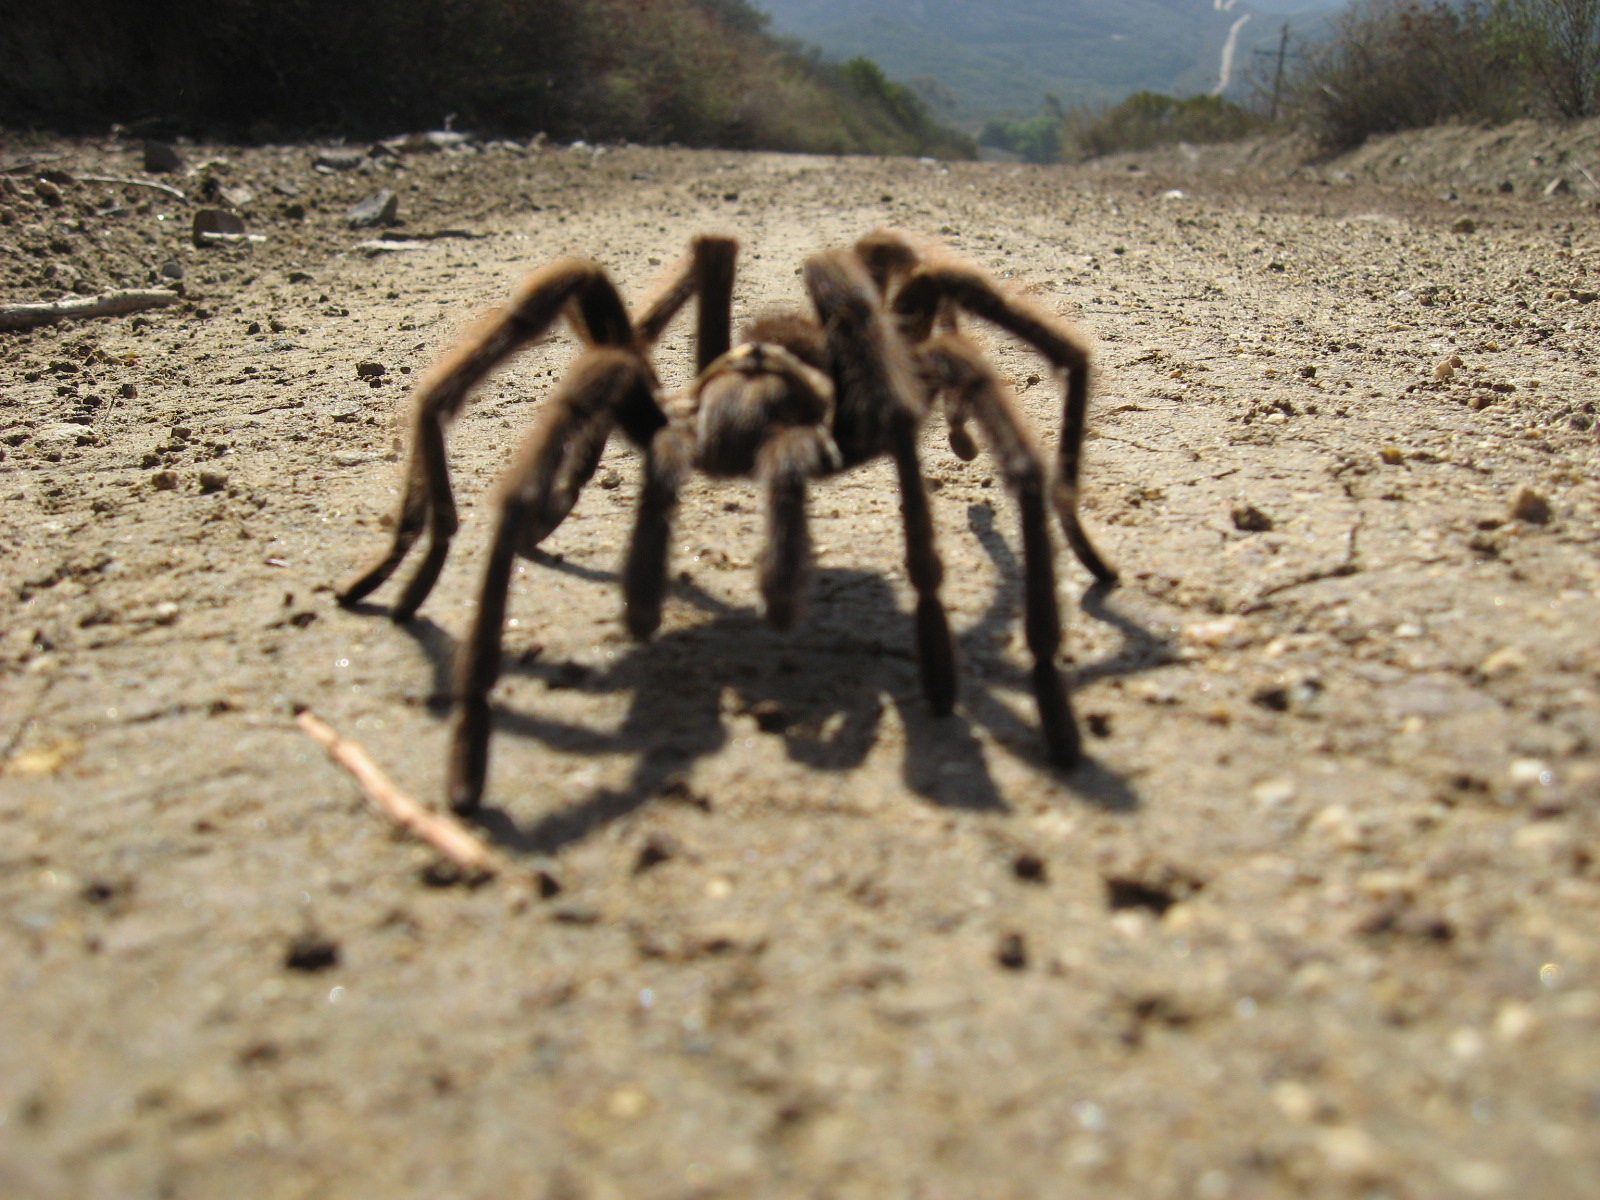 Low angle view of Tarantula, horizon in background